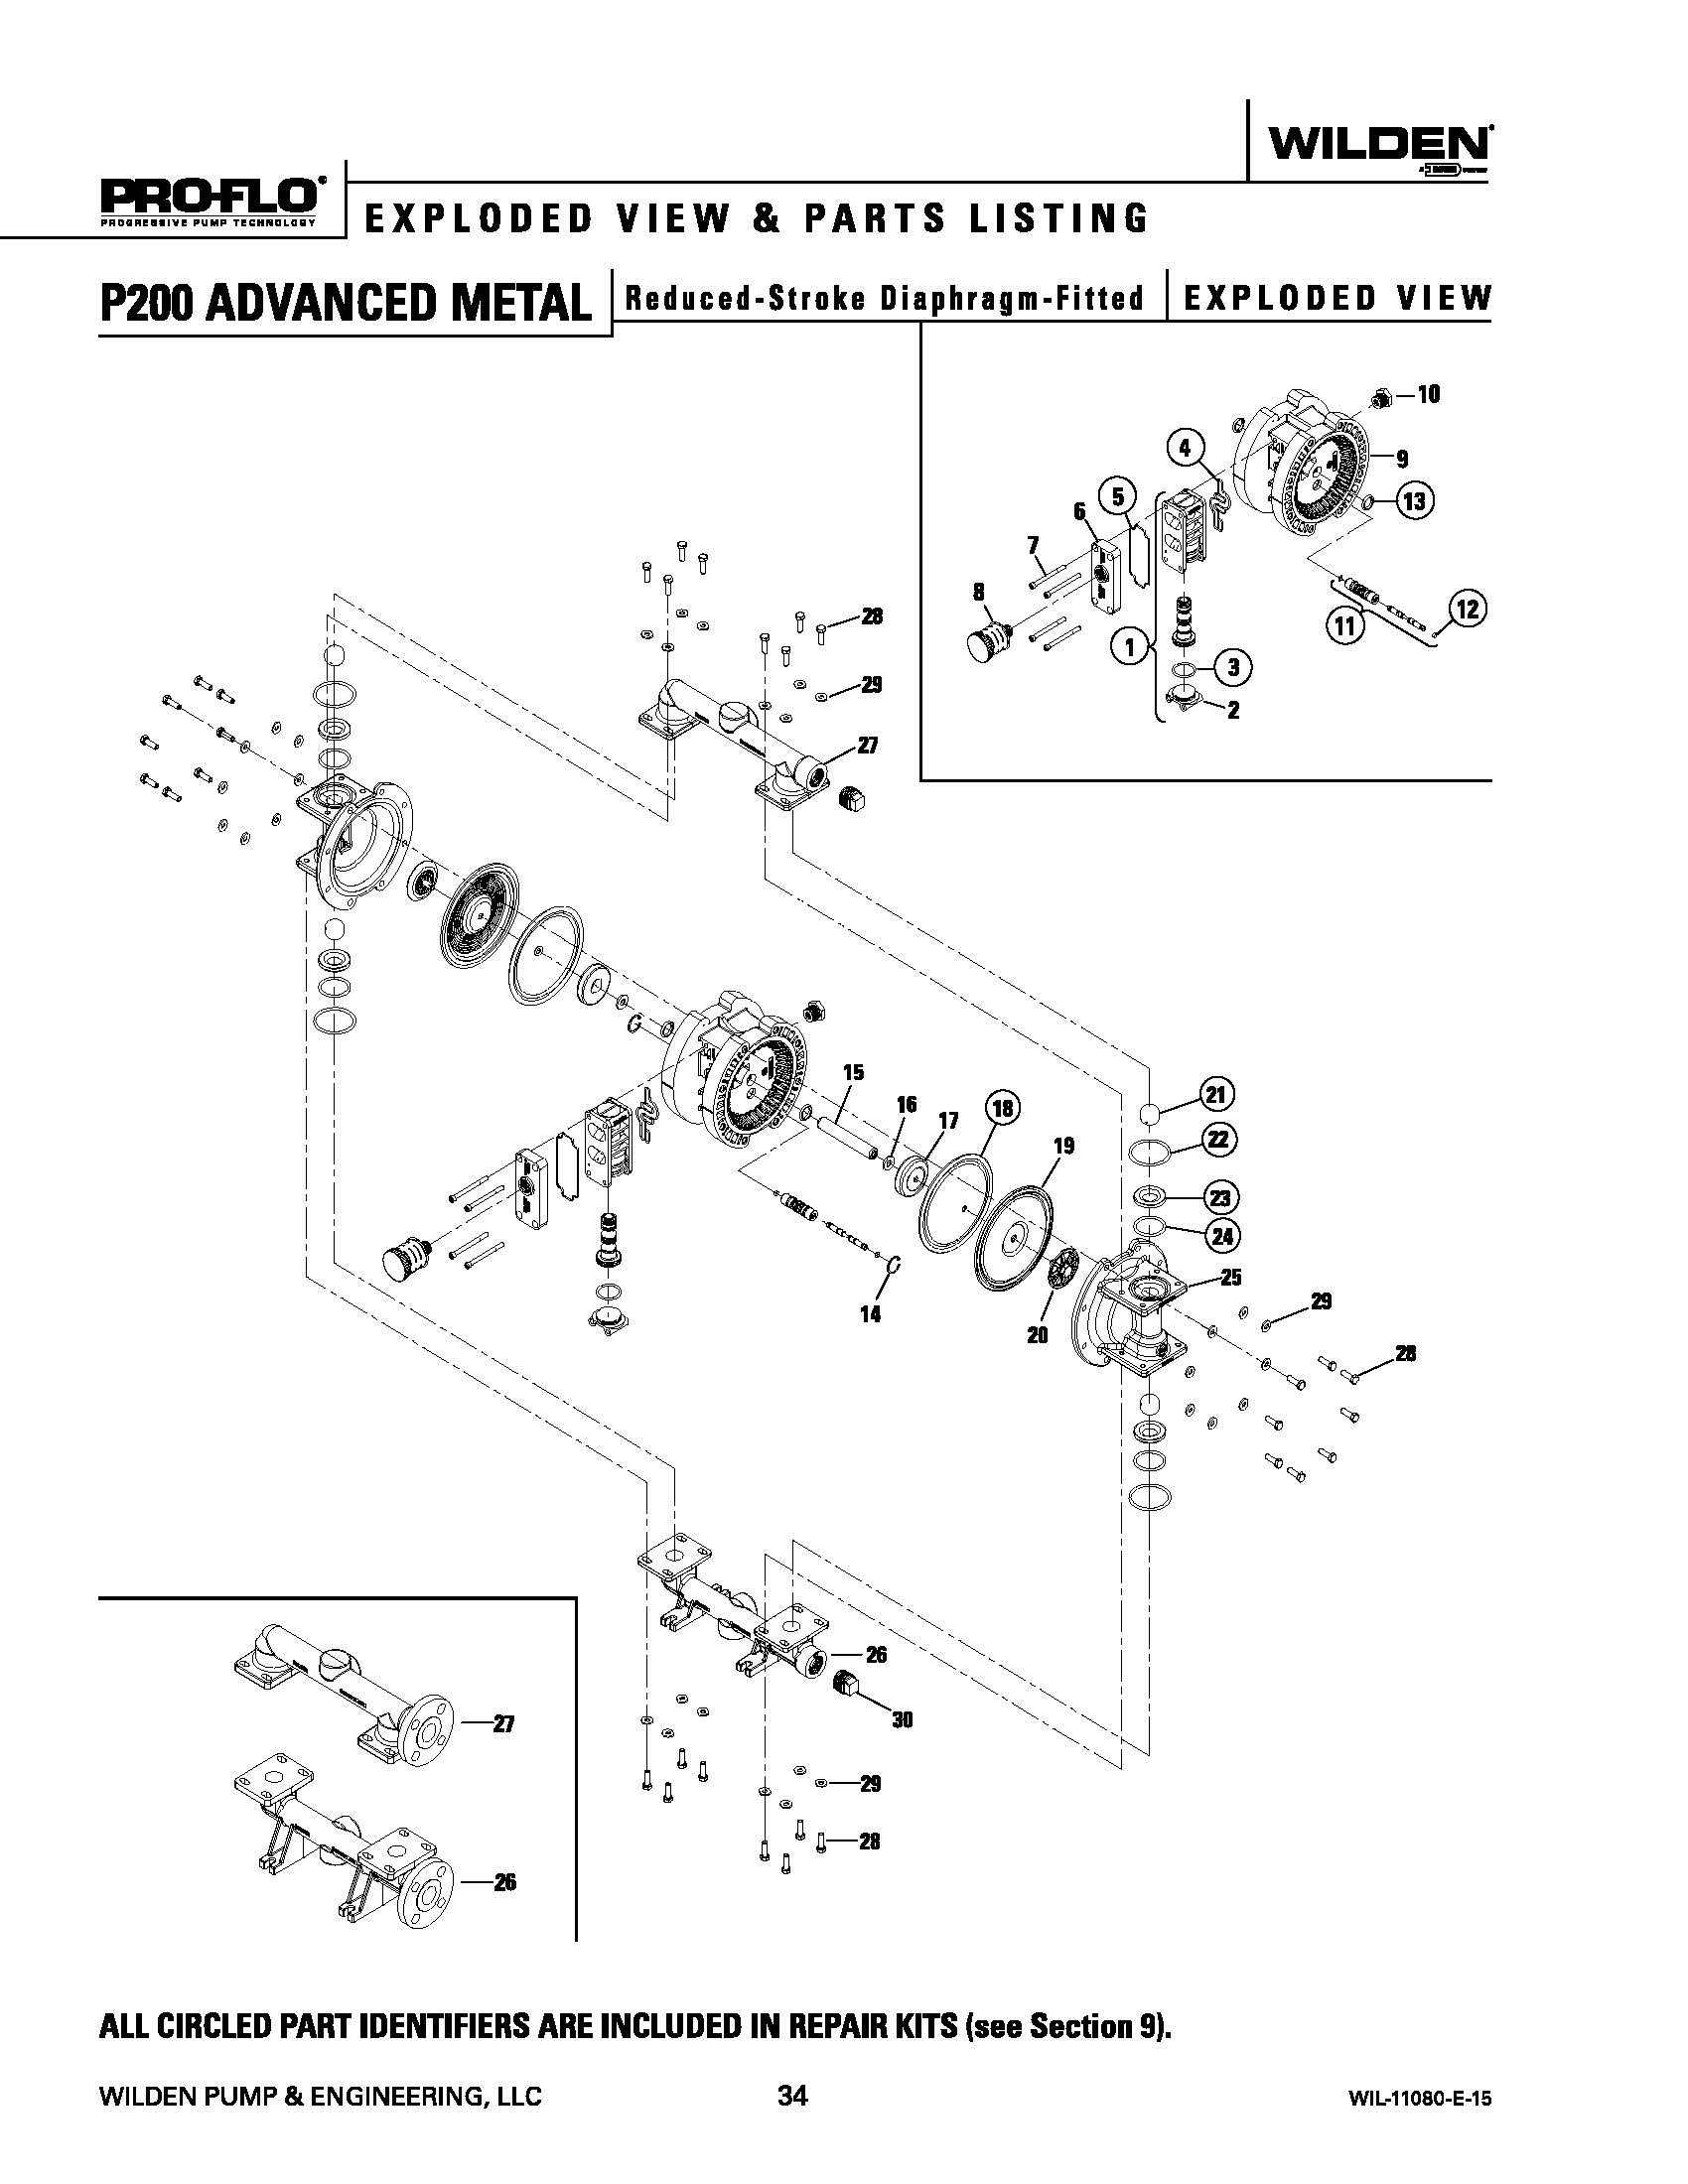 Wilden P200 Advanced Metal Reduced Stroke Exploded View